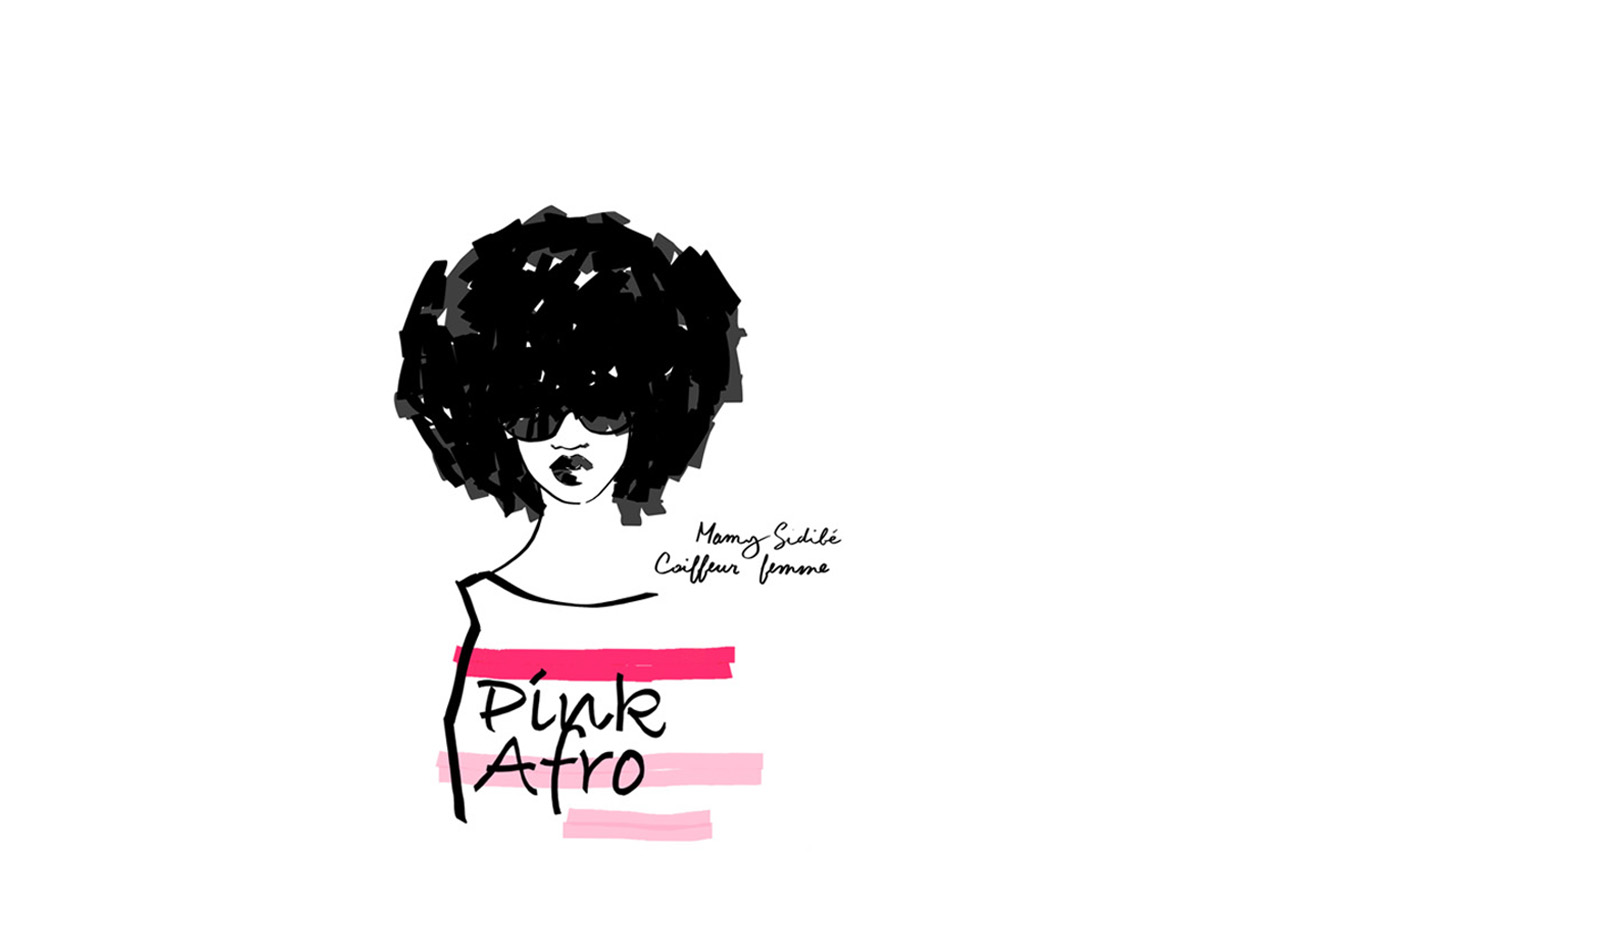 Pink Afro, Mamy Sidibé coiffeur femme afro